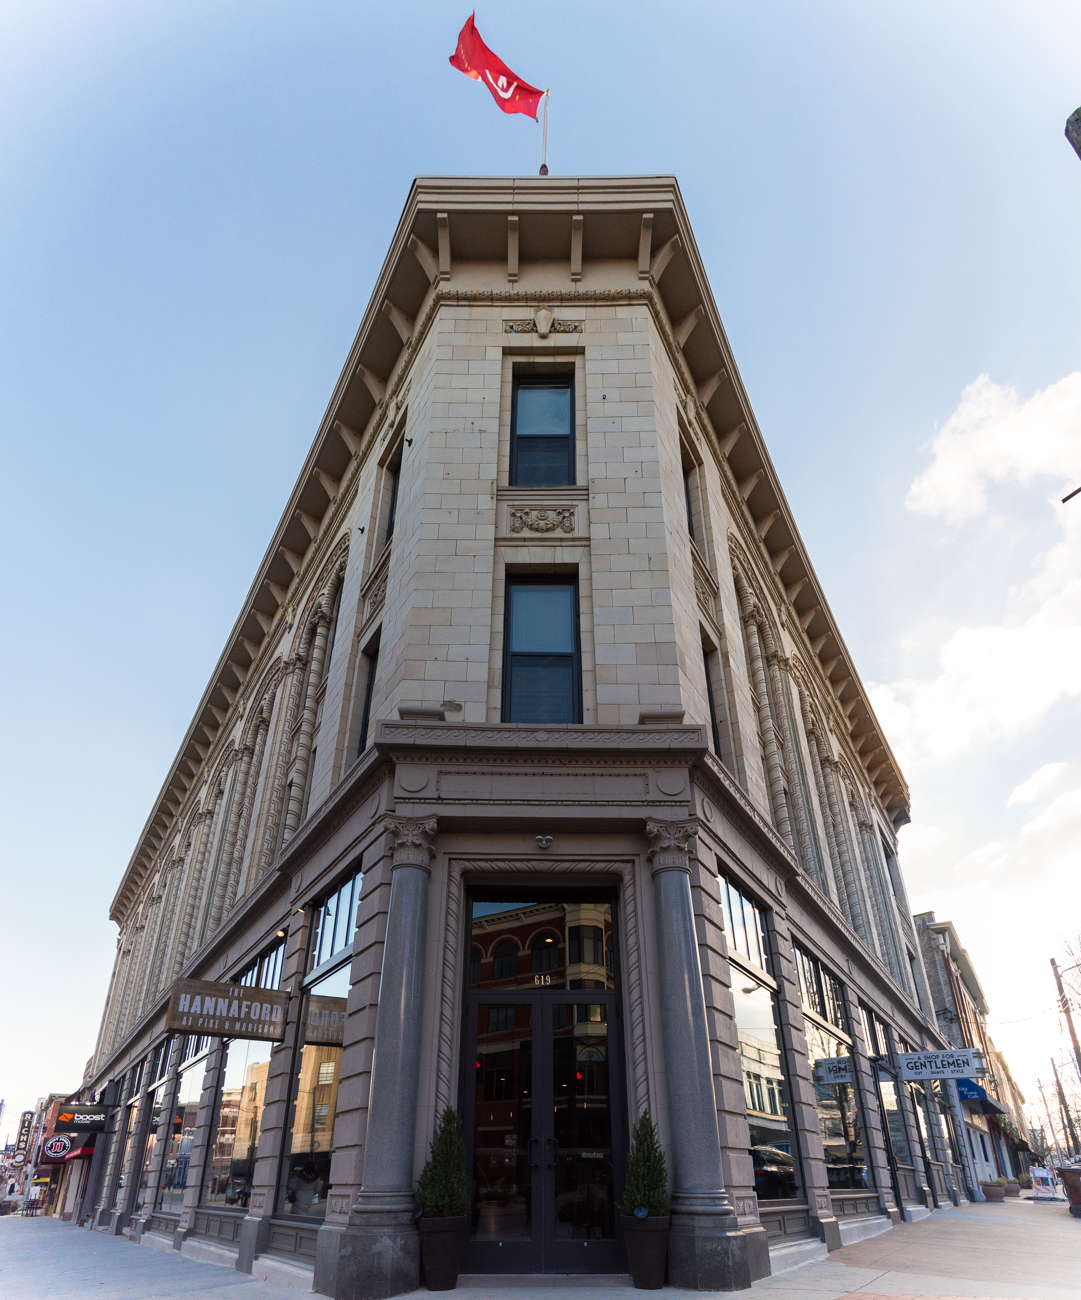 Located in Covington's historic Mutual Building, a new bar inspired by 19th-century architect Samuel Hannaford opened in November after its namesake. Hannaford designed prominent Cincinnati buildings such as Music Hall and City Hall. ADDRESS: 619 Madison Ave., Covington, Kentucky 41011 / Image: Phil Armstrong, Cincinnati Refined / Published: 12.30.16